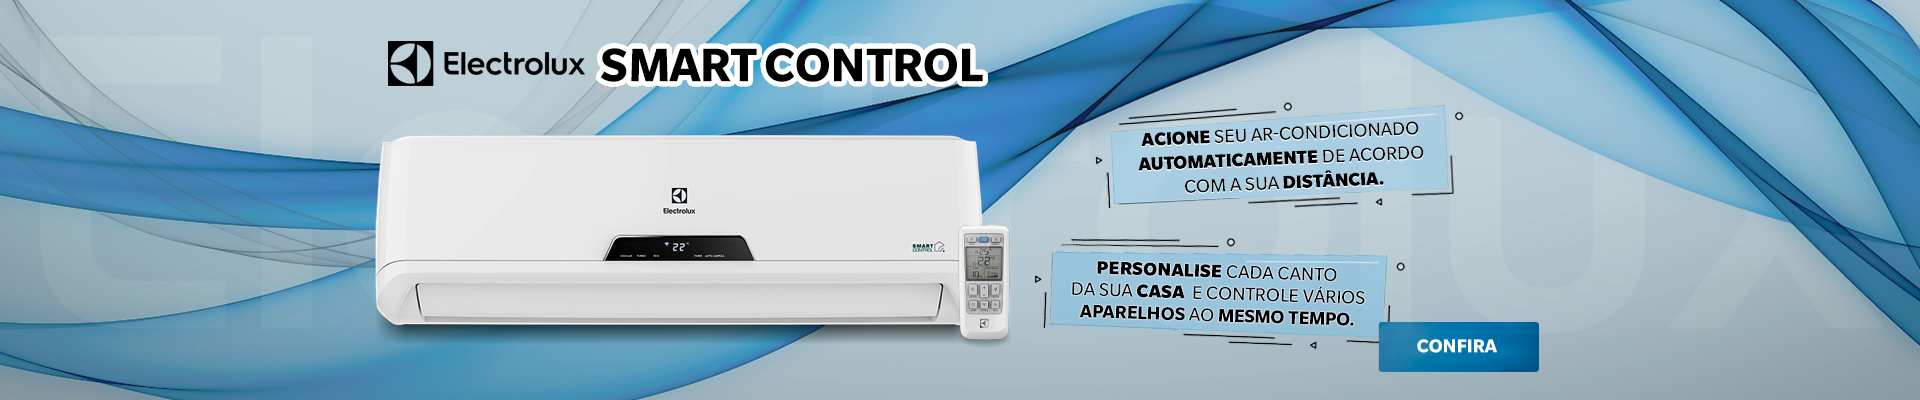 Electrolux Smart Control